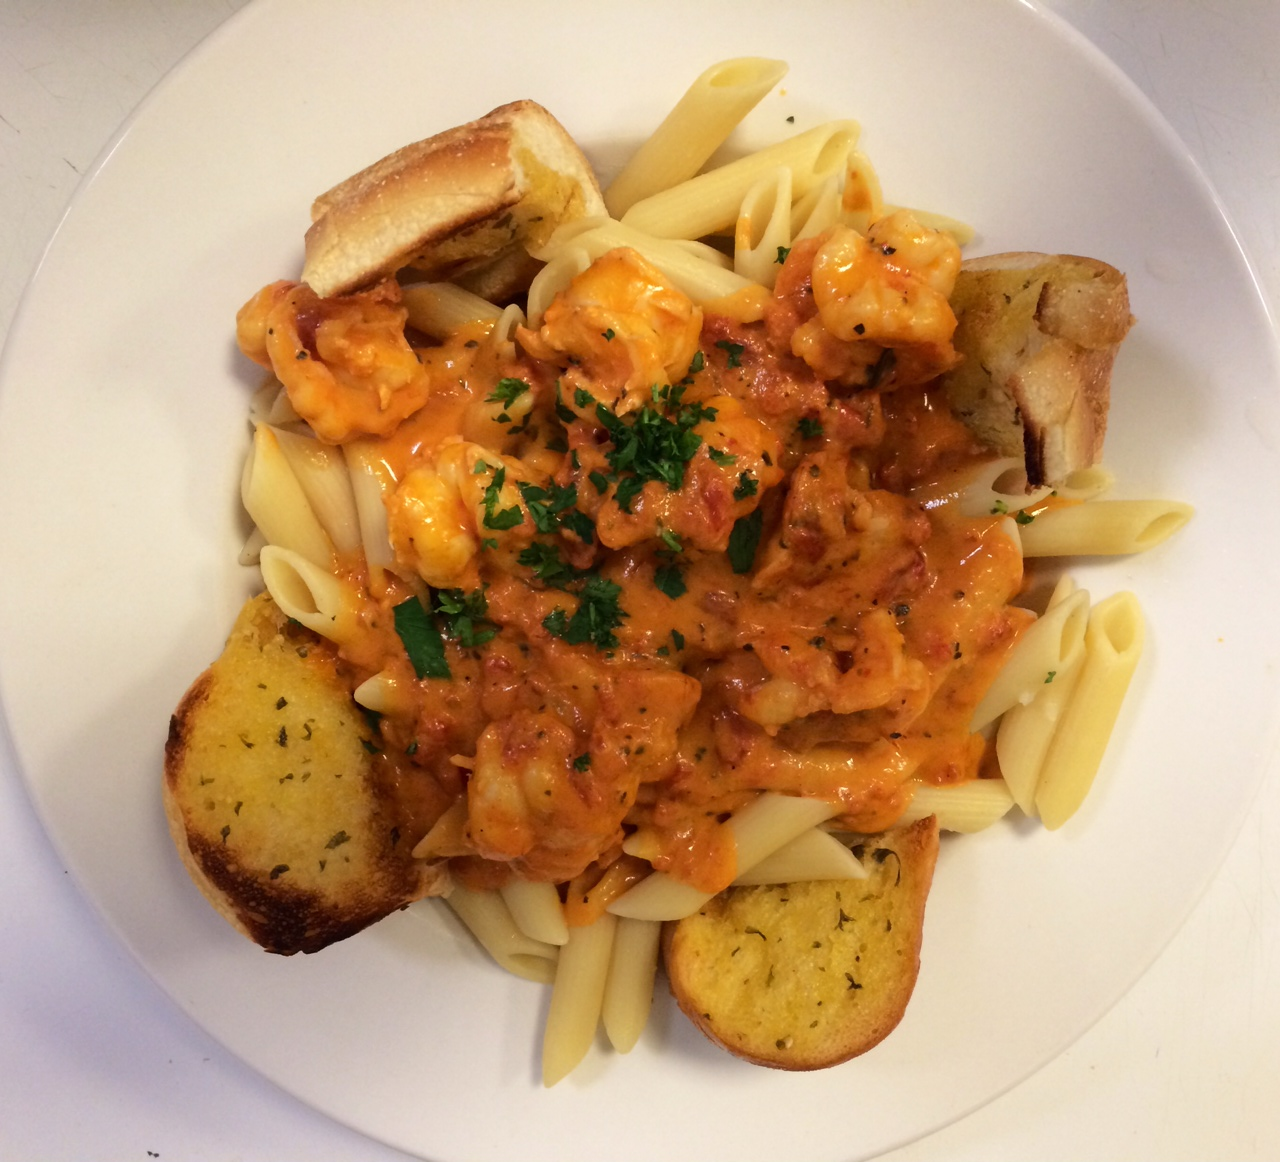 penne pasta with homemade vodka sauce and garlic bread